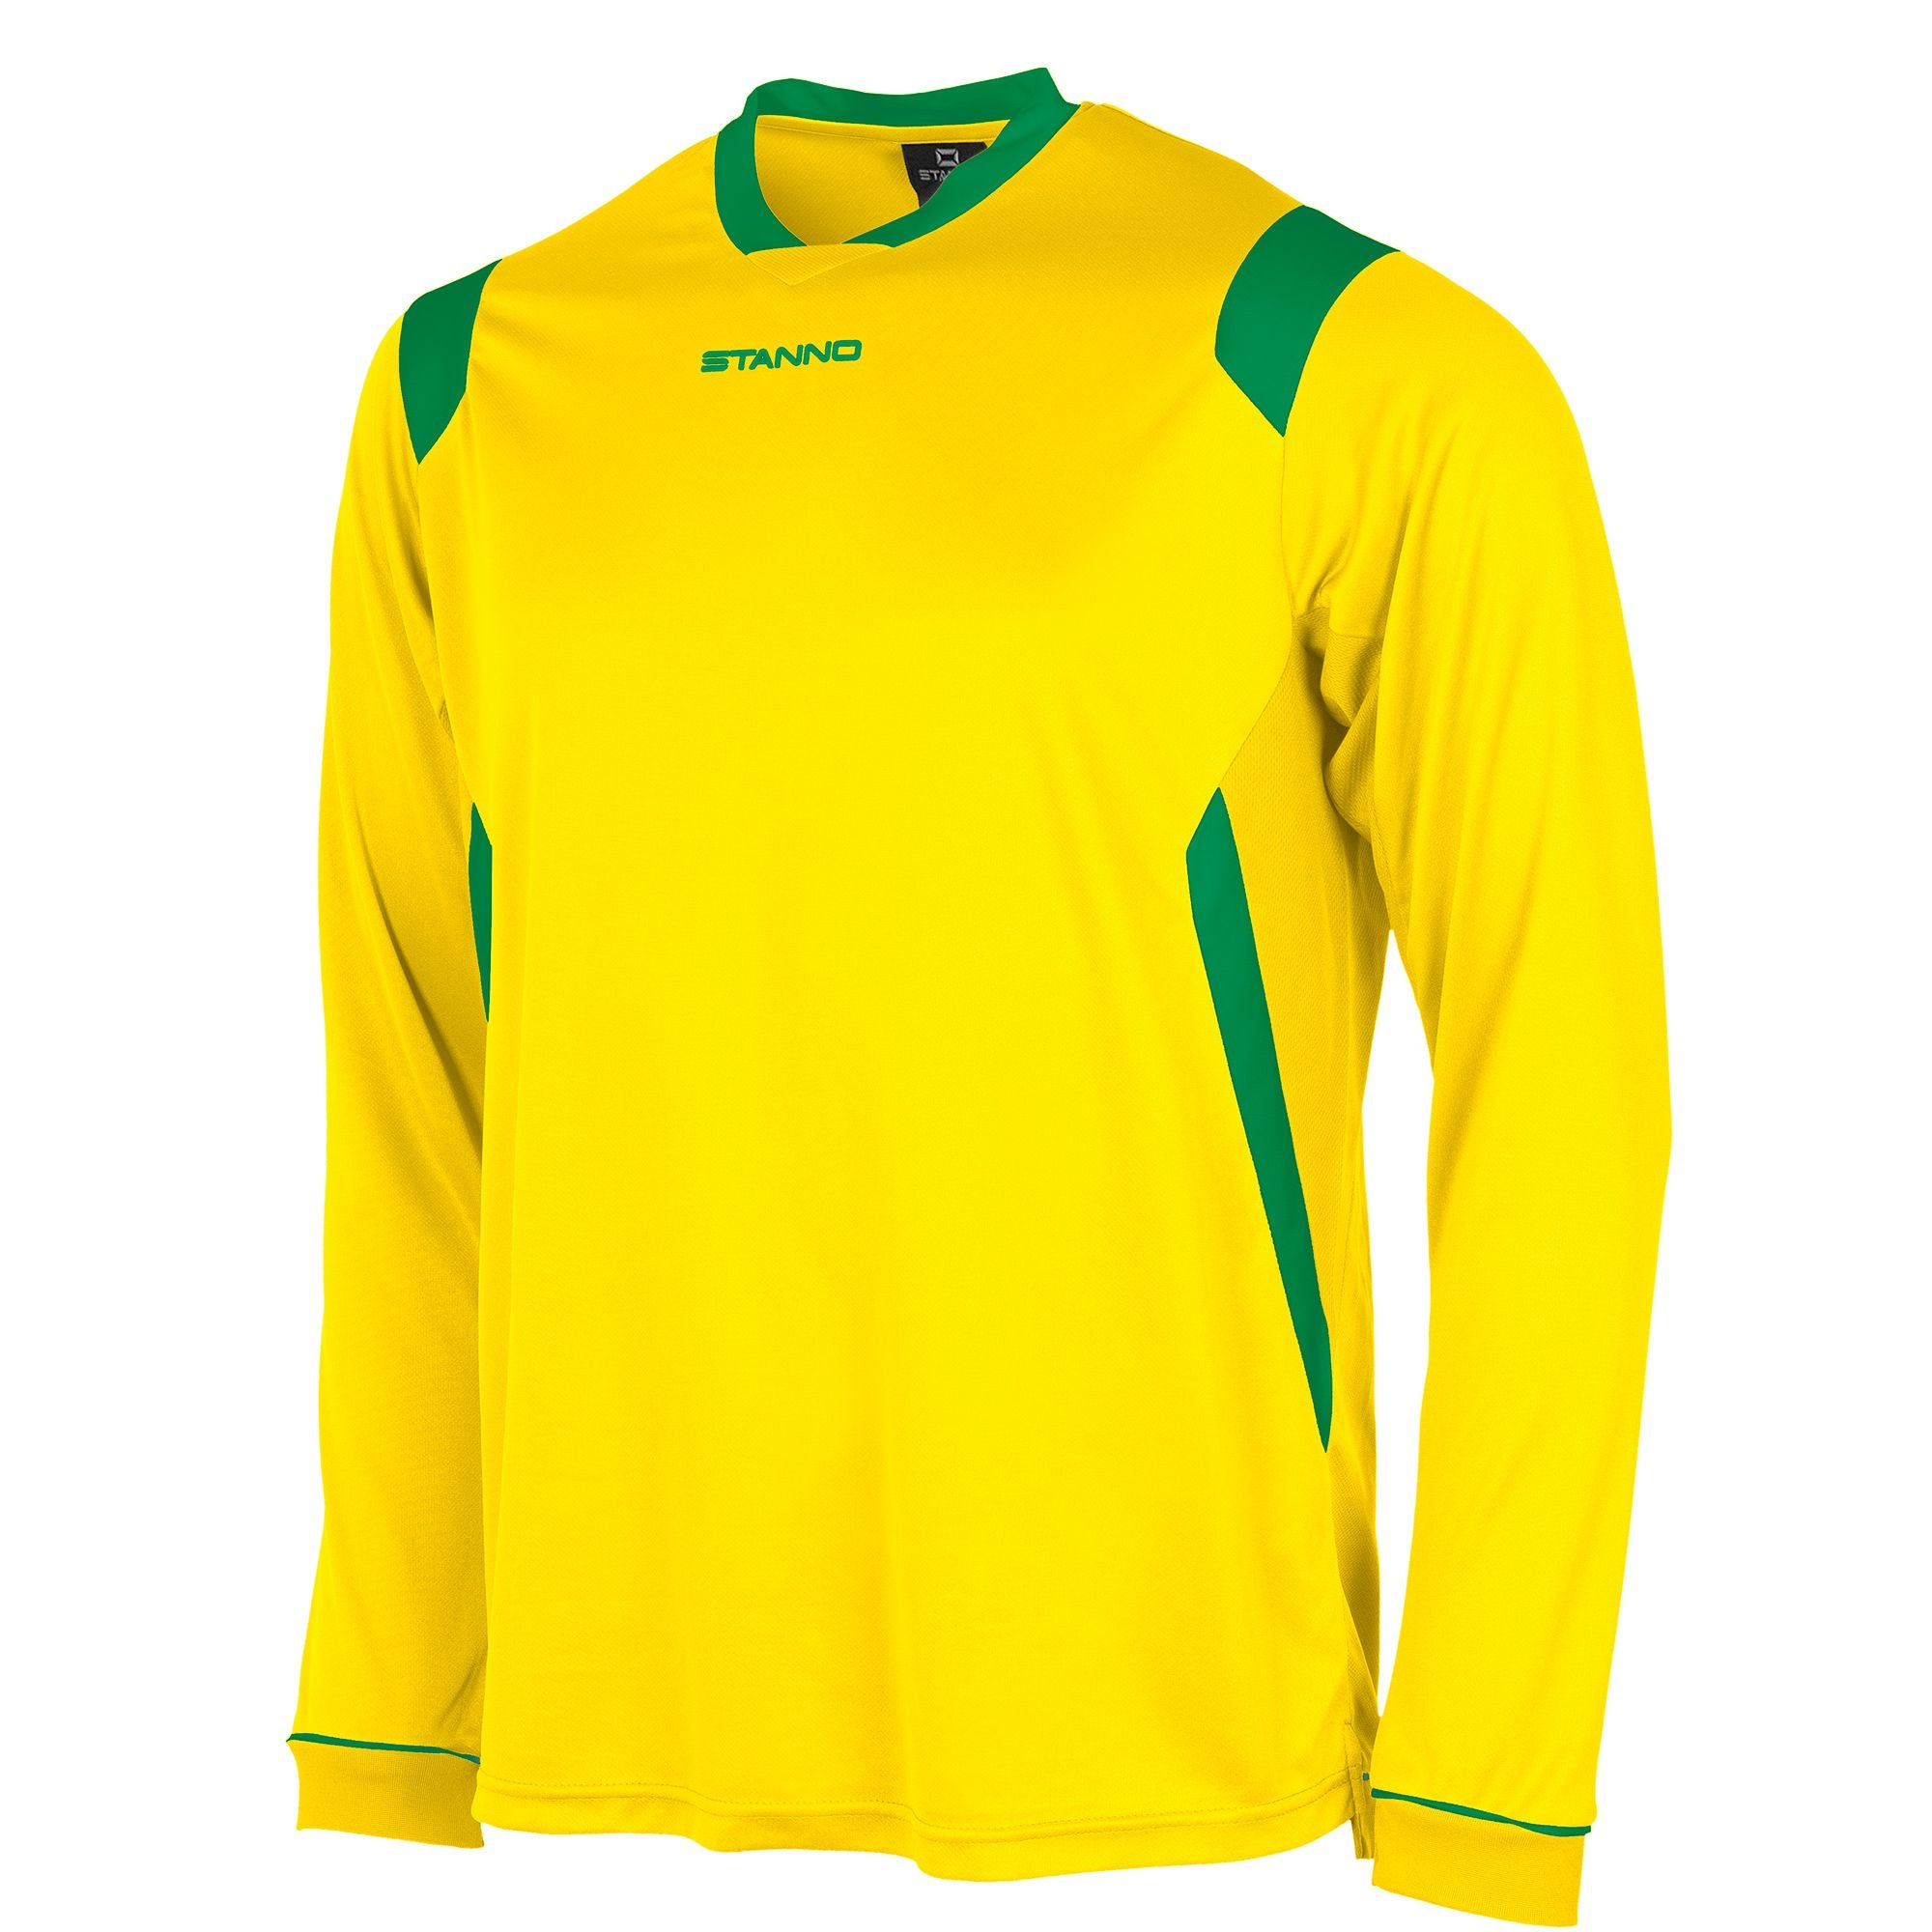 Stanno Arezzo long sleeved shirt in yellow with green contrast collar, and stripe detail on shoulders and sides.